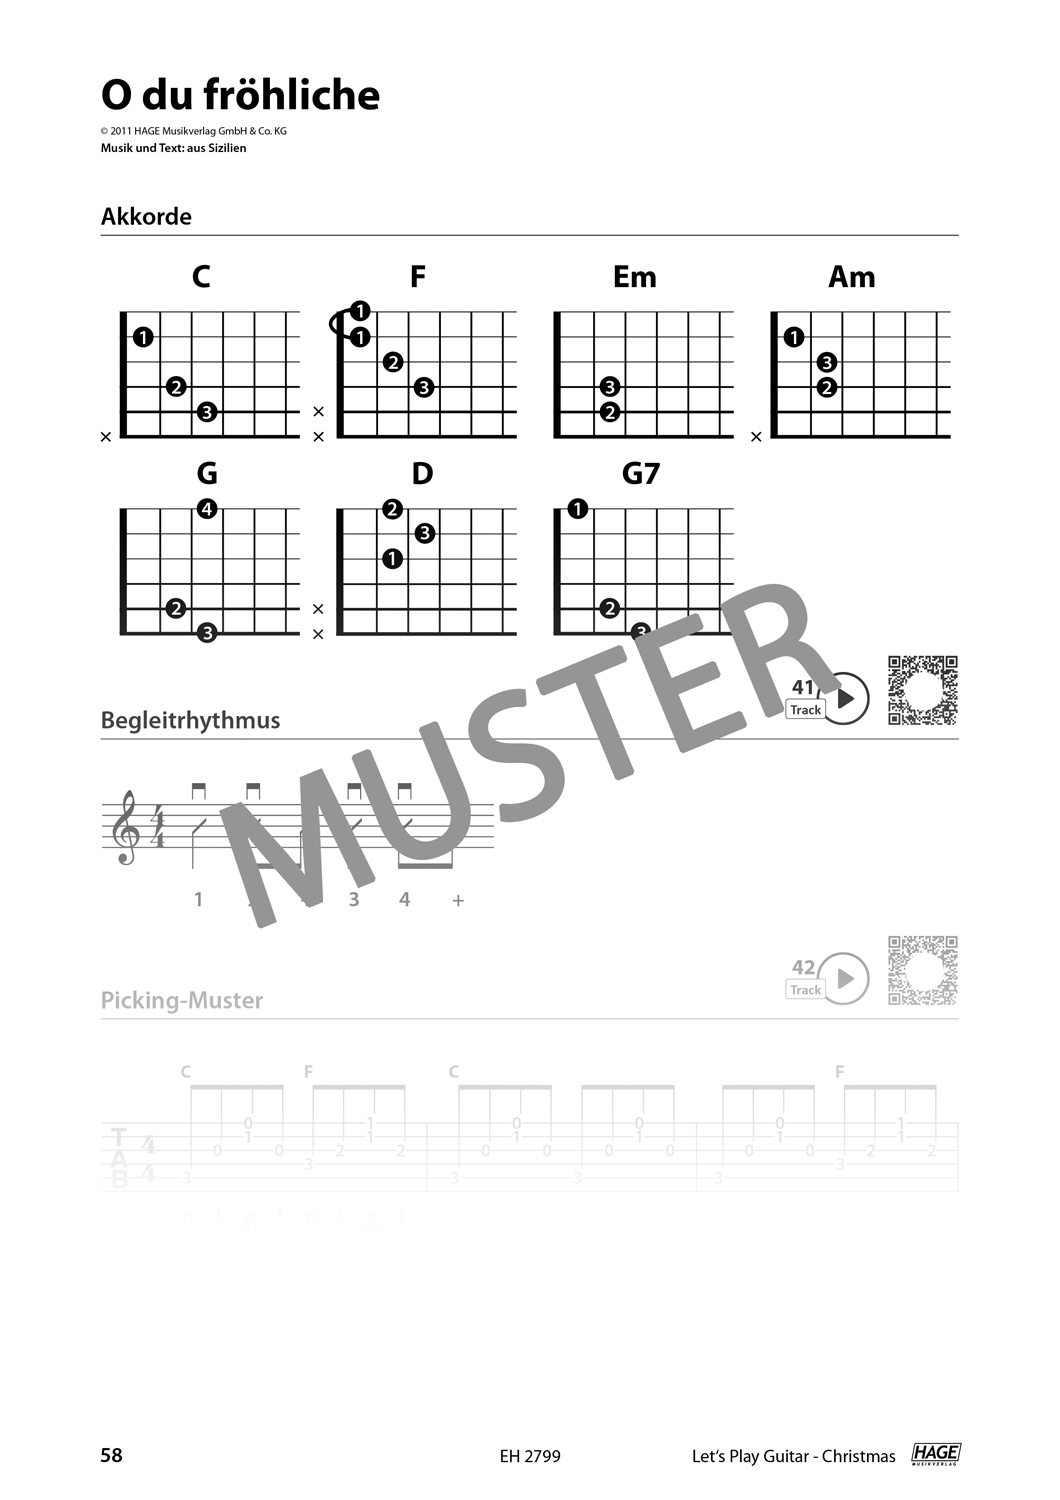 Let's Play Guitar Christmas (with QR-Codes) Pages 7